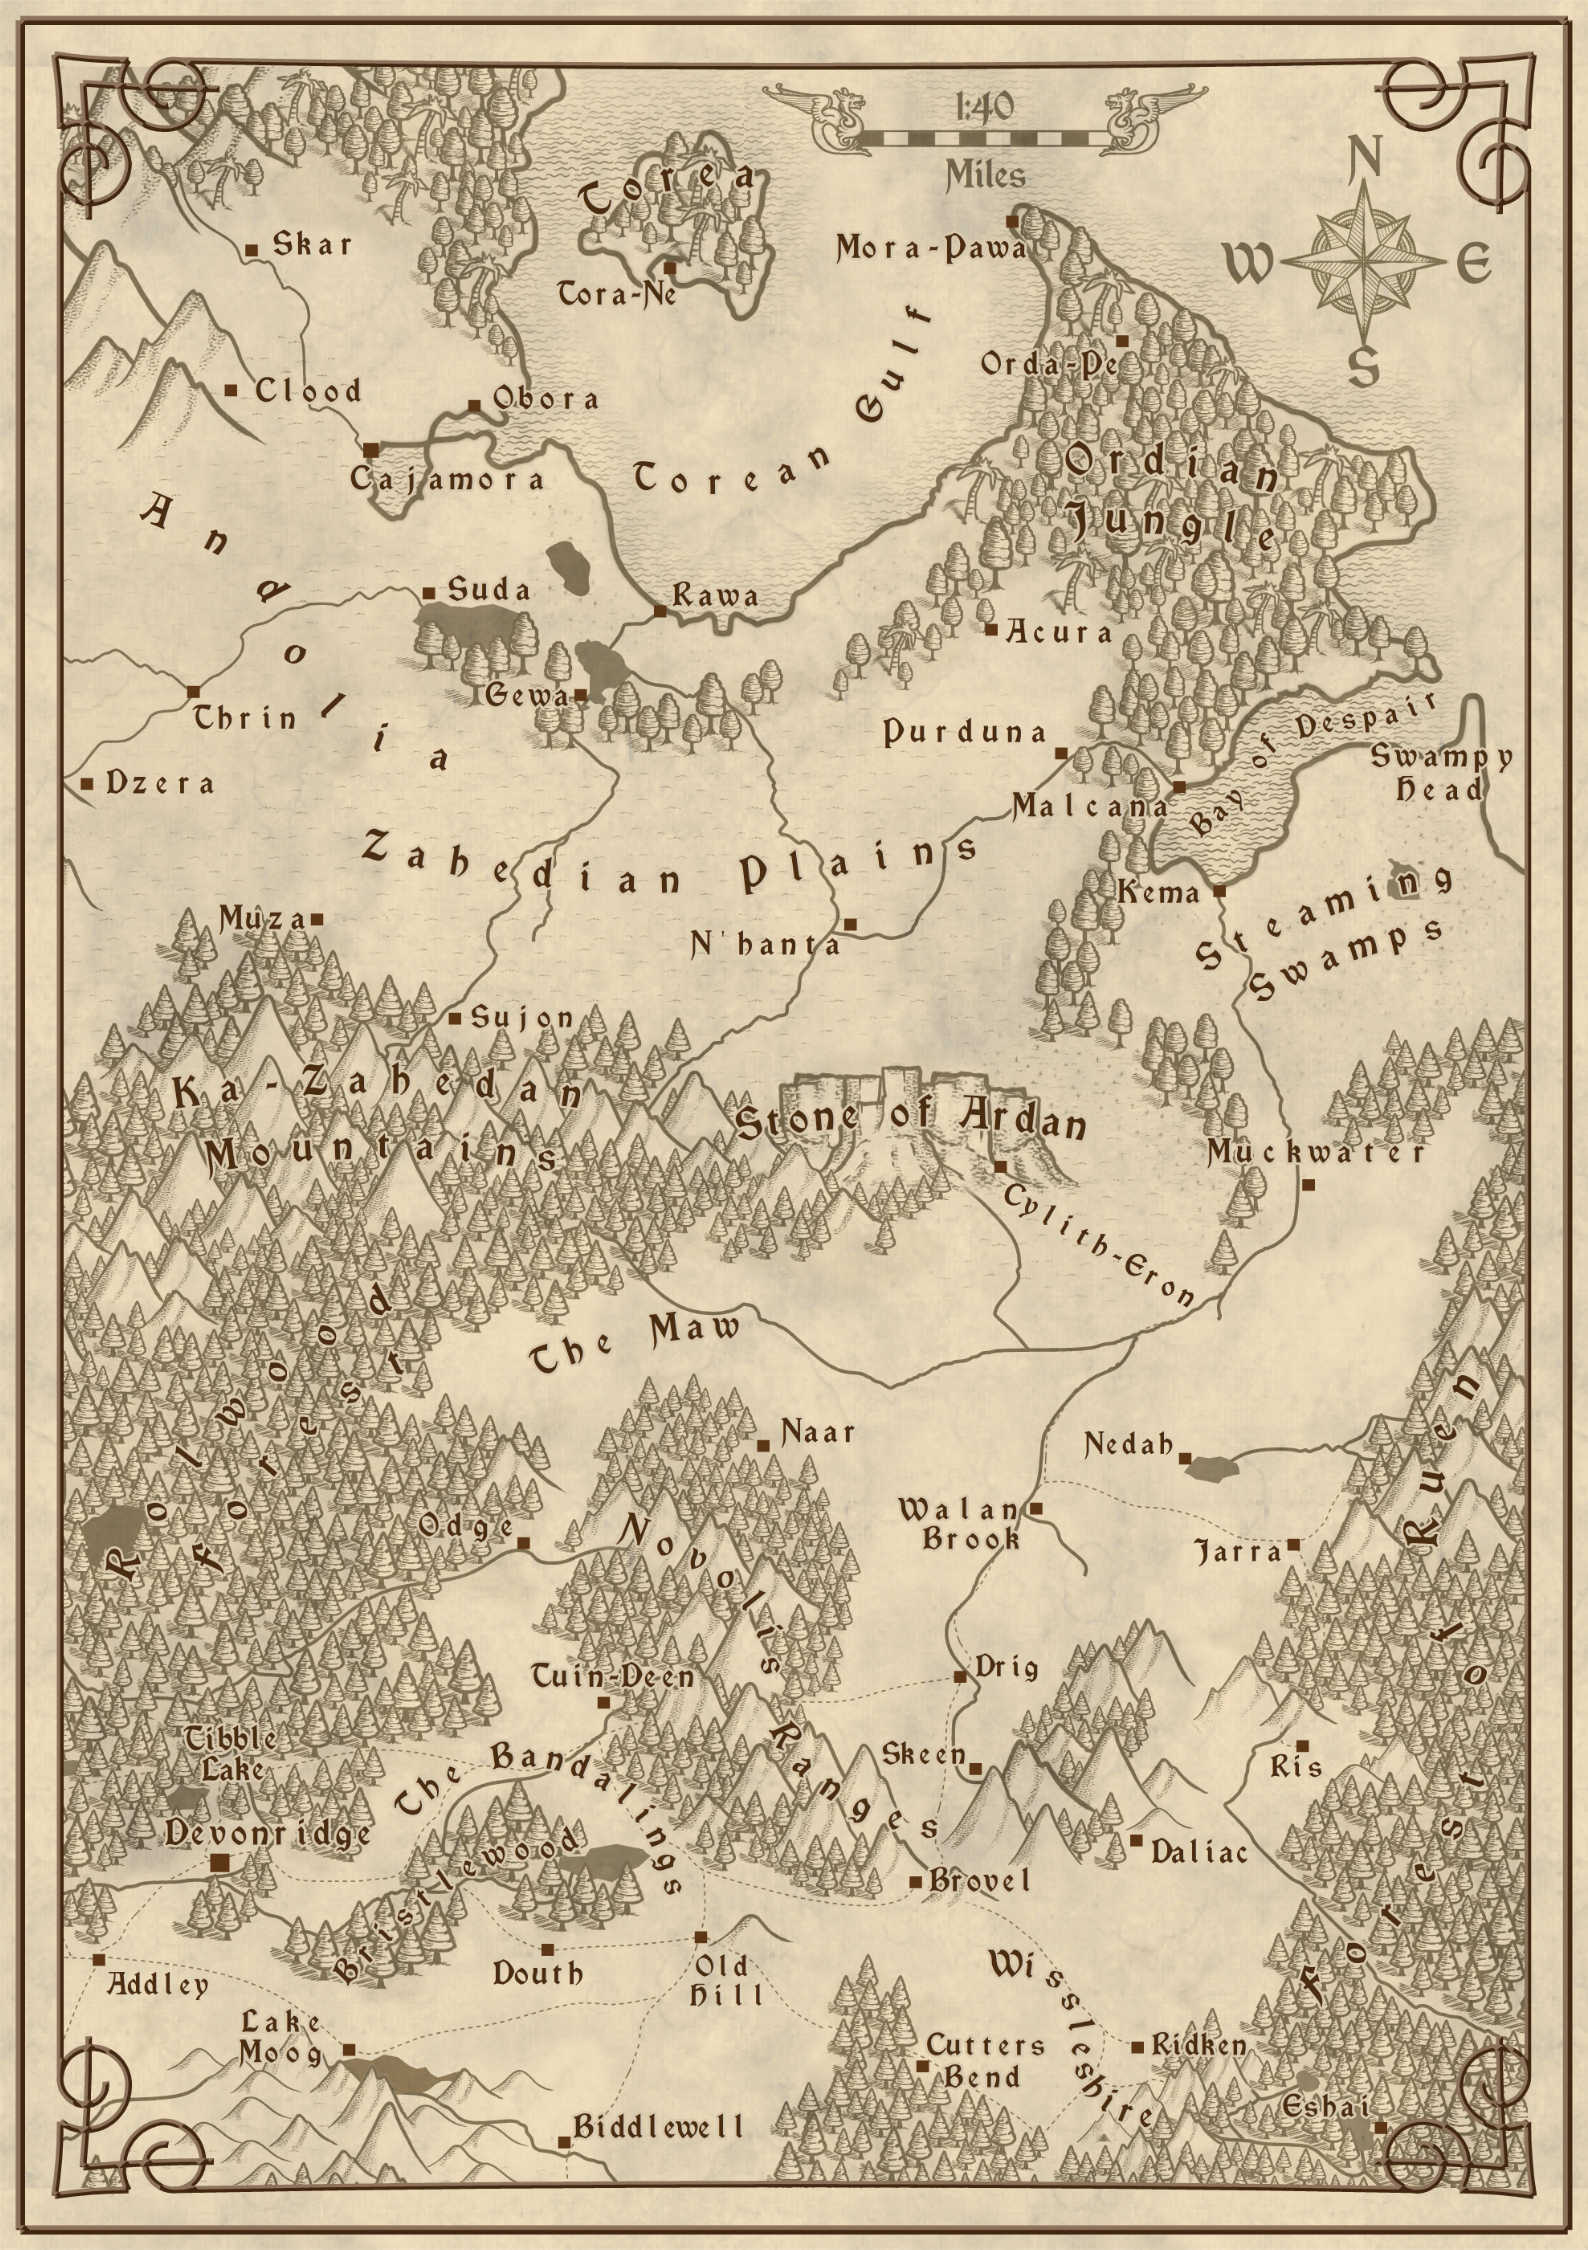 Heir of the Hunted Map 1